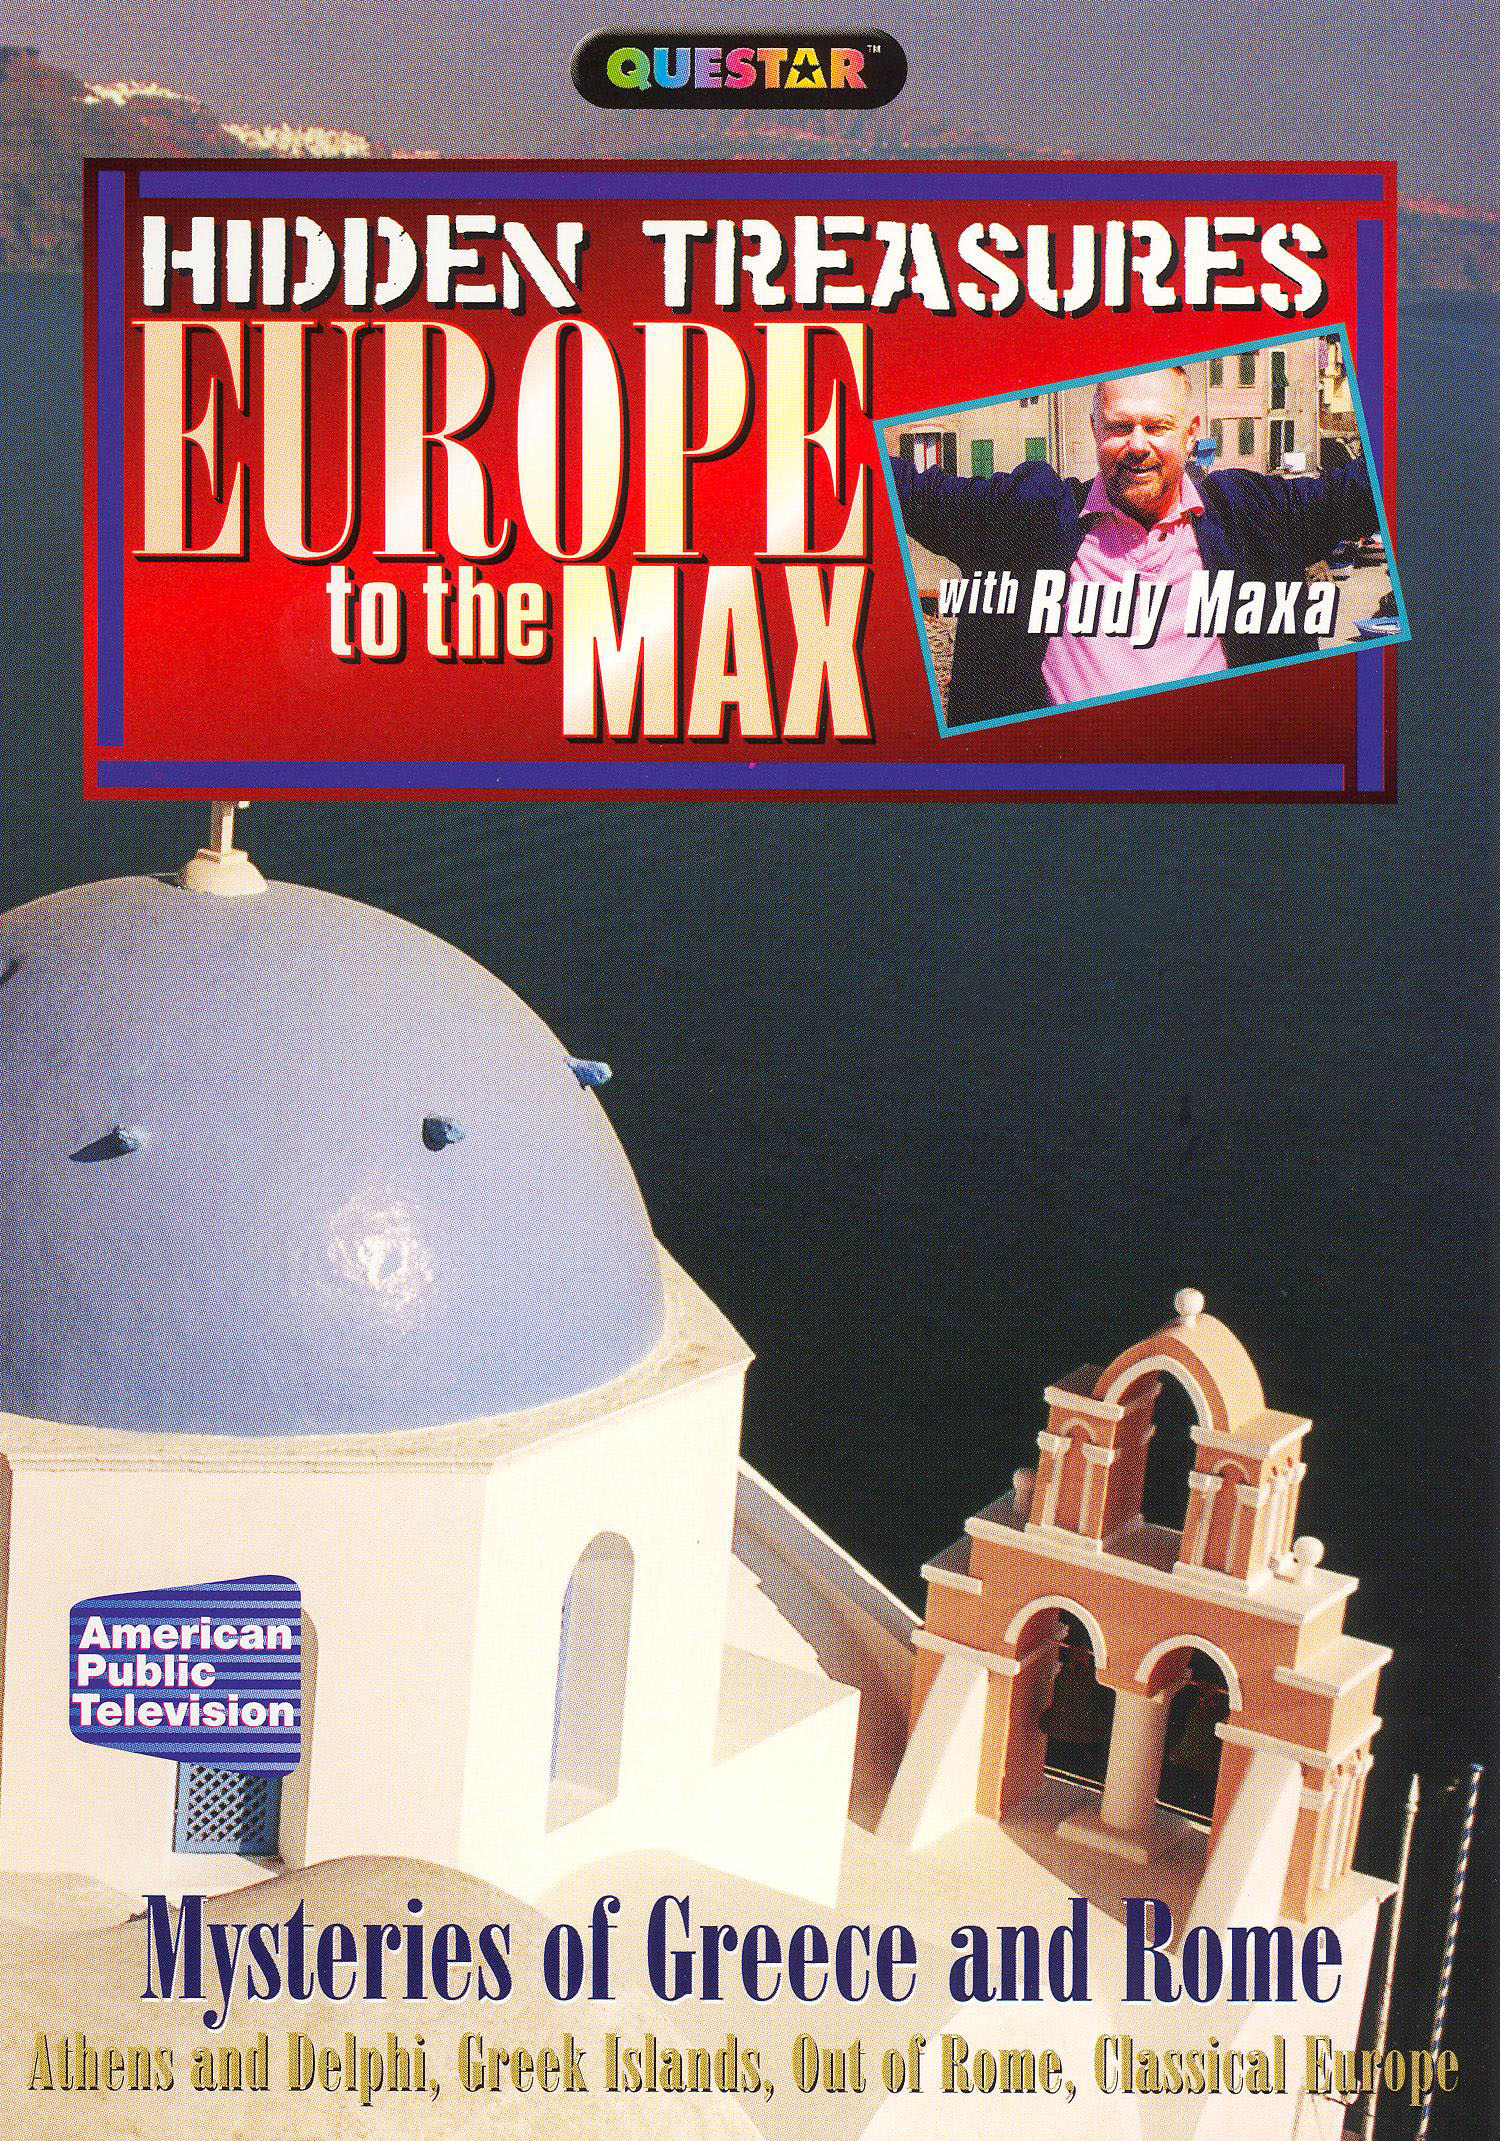 Rudy Maxa: Europe to the Max: Hidden Treasures - Mysteries of Greece and Rome